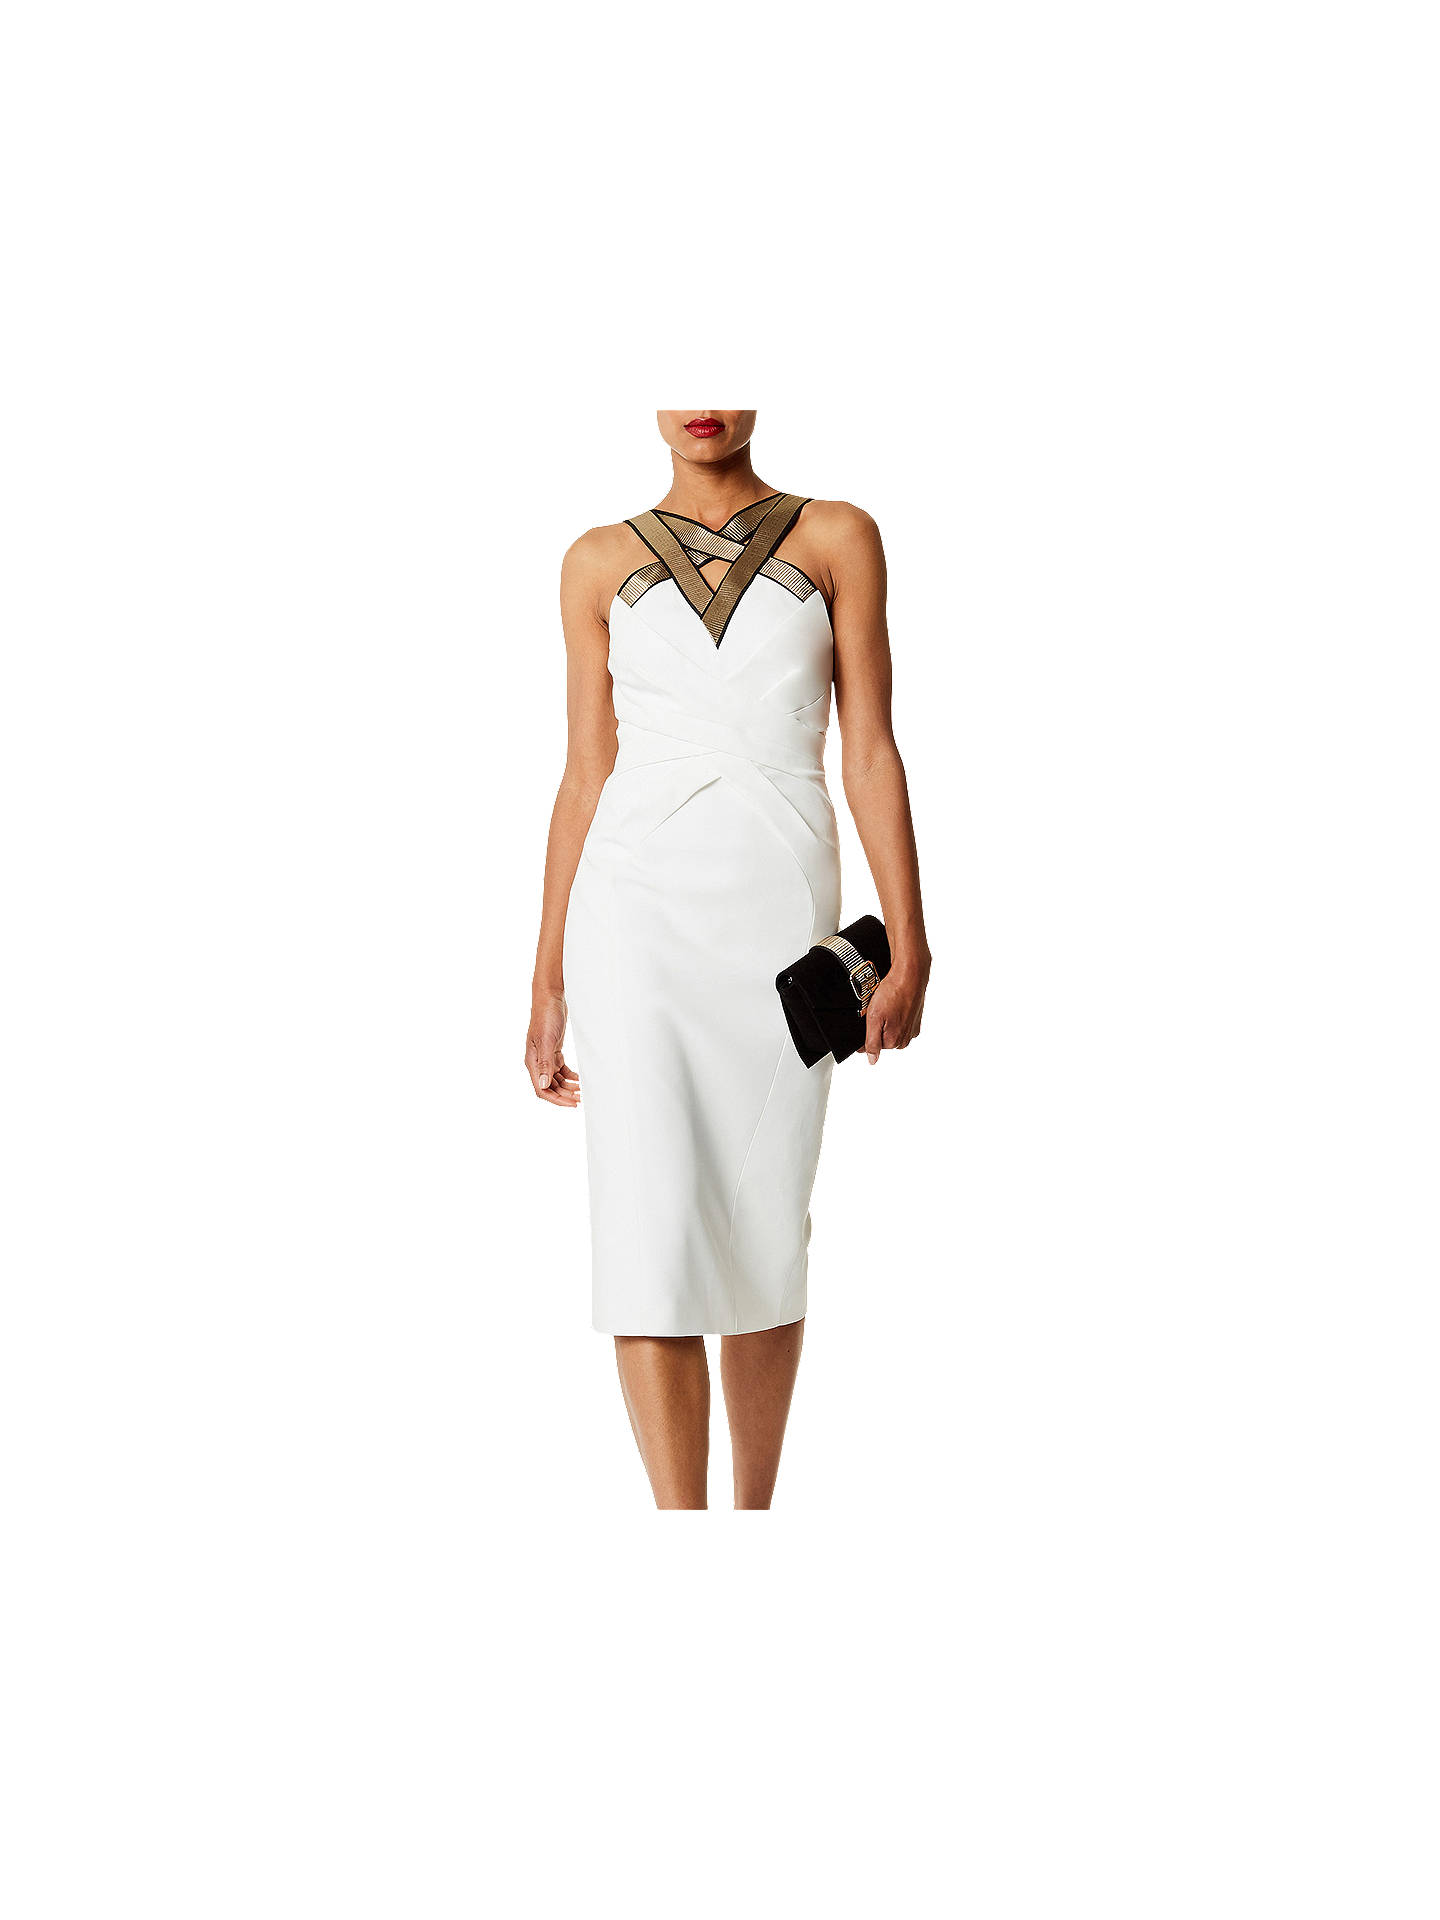 John lewis bodycon dress questions and answers